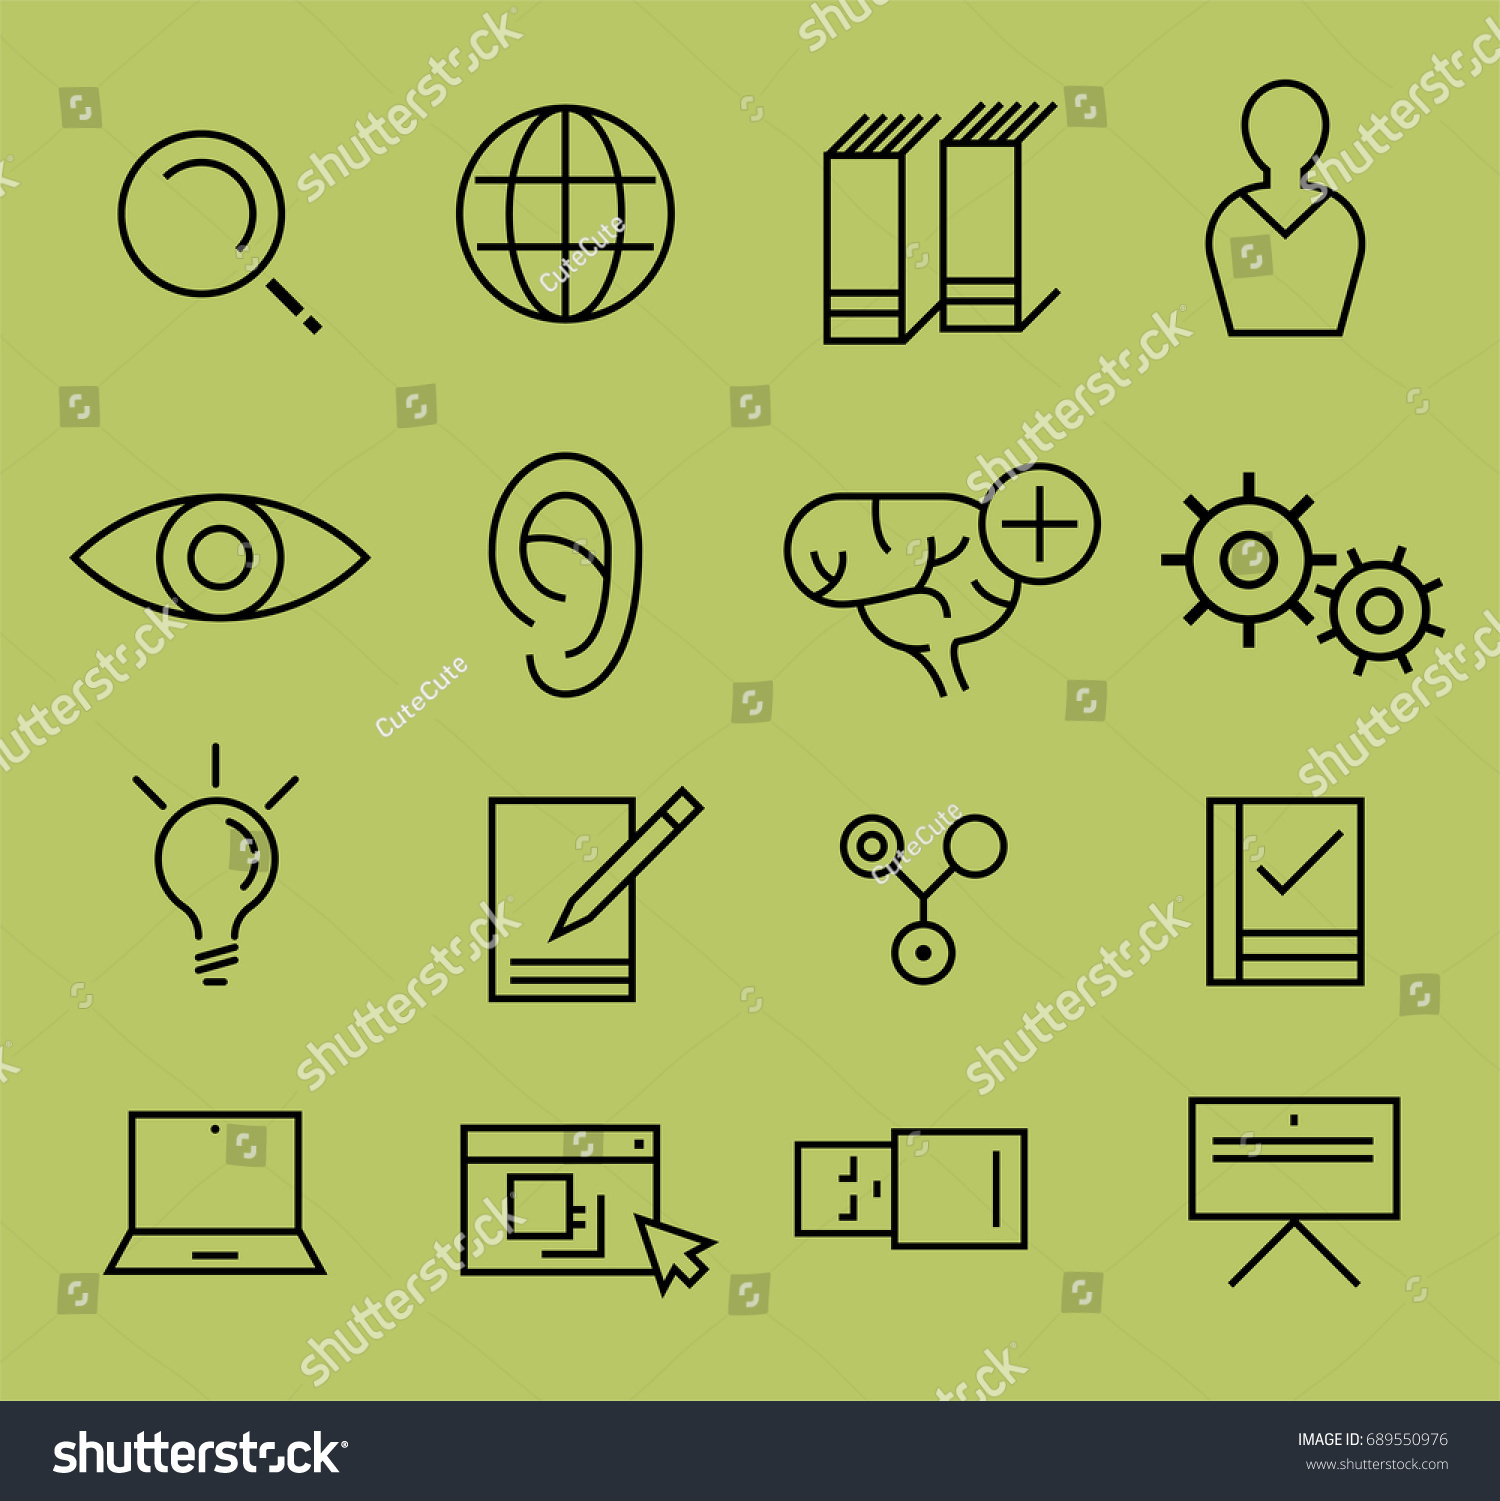 Research icon concept slim style step stock vector 689550976 research icon concept slim style step studying finding analyzing and presenting project biocorpaavc